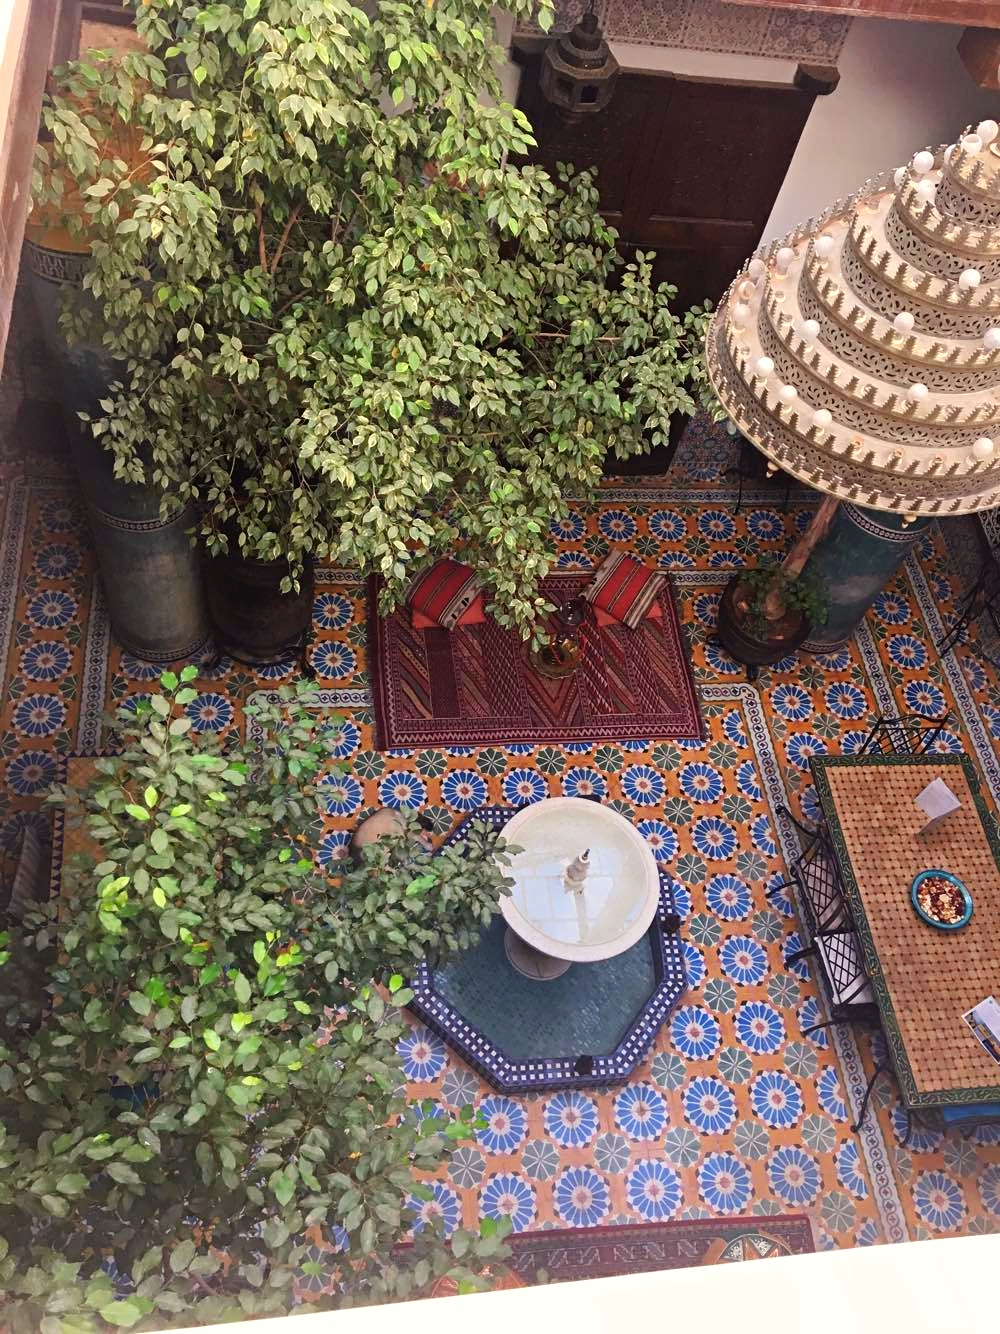 Staying at a Moroccan Riad